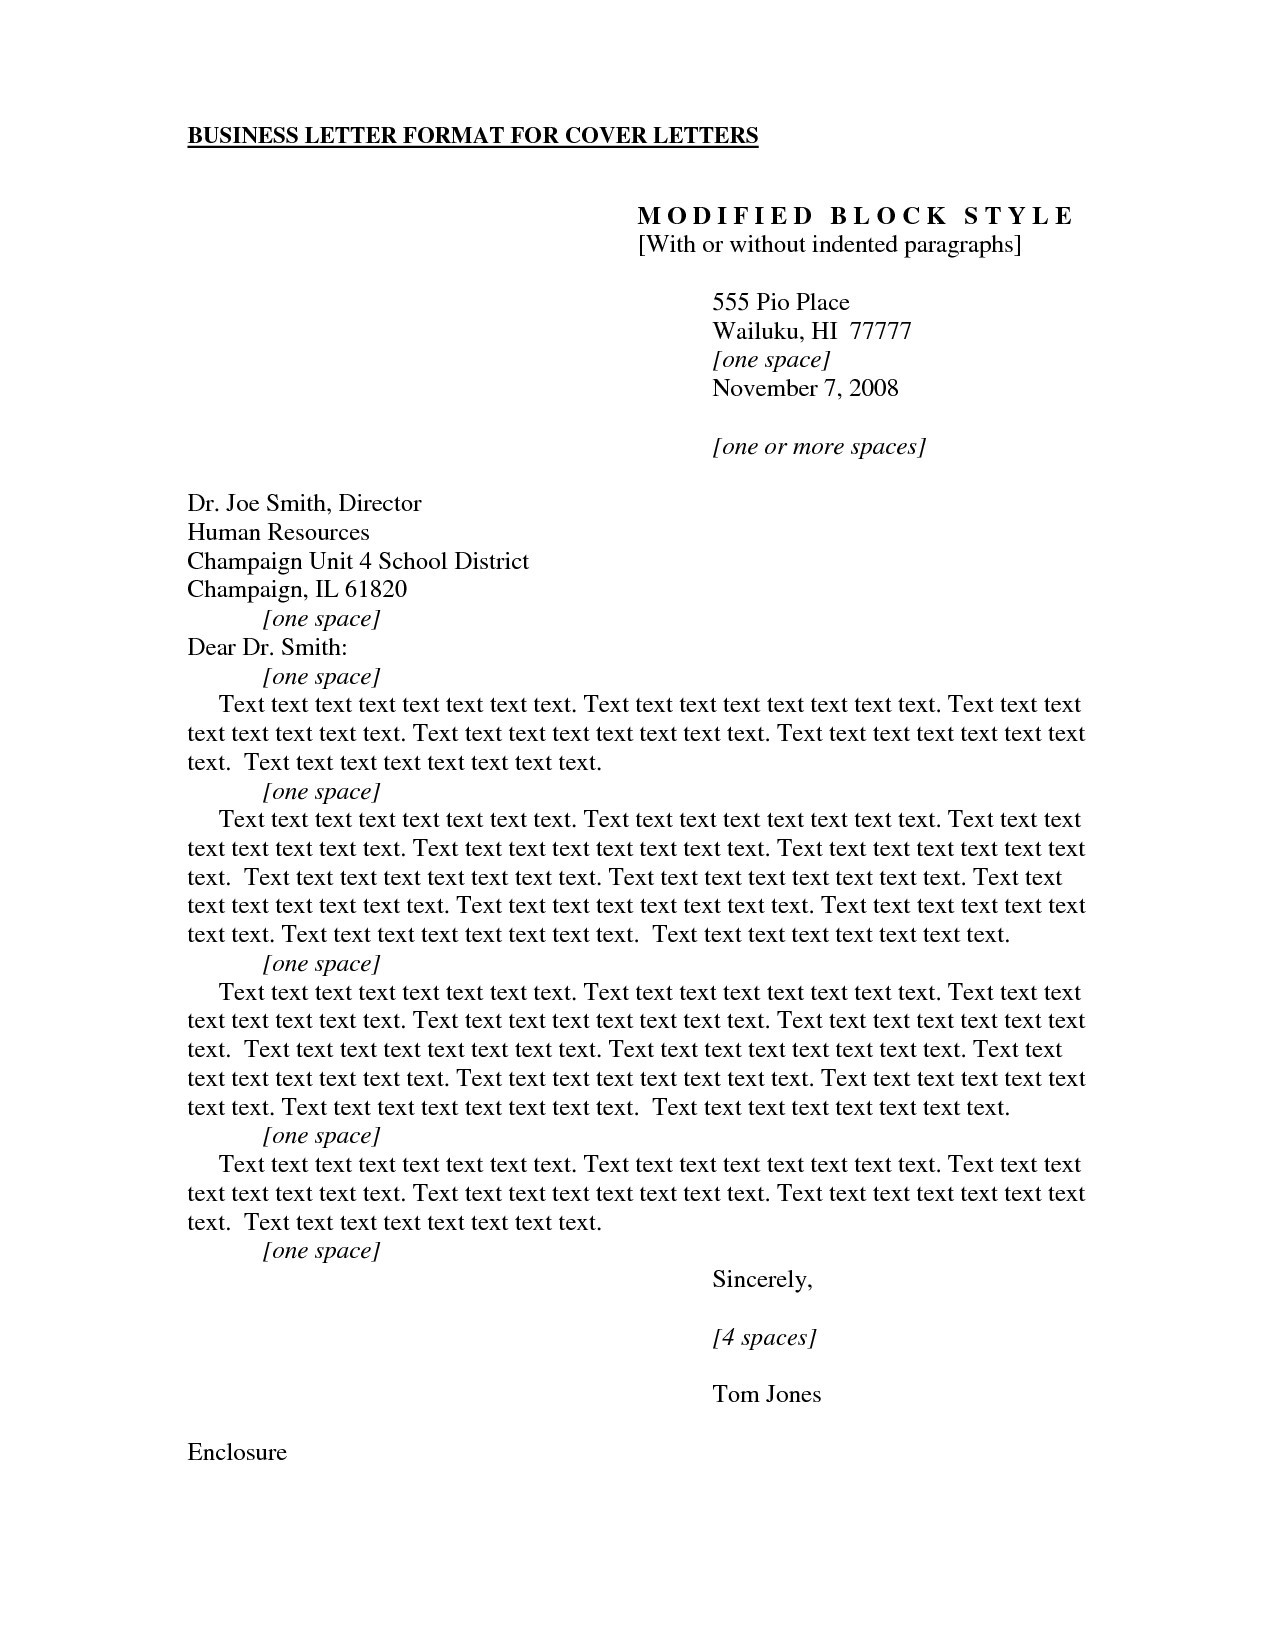 Letter Format Style New Formal Business Cover Letter Format regarding Formal Business Cover Letter Format 22544